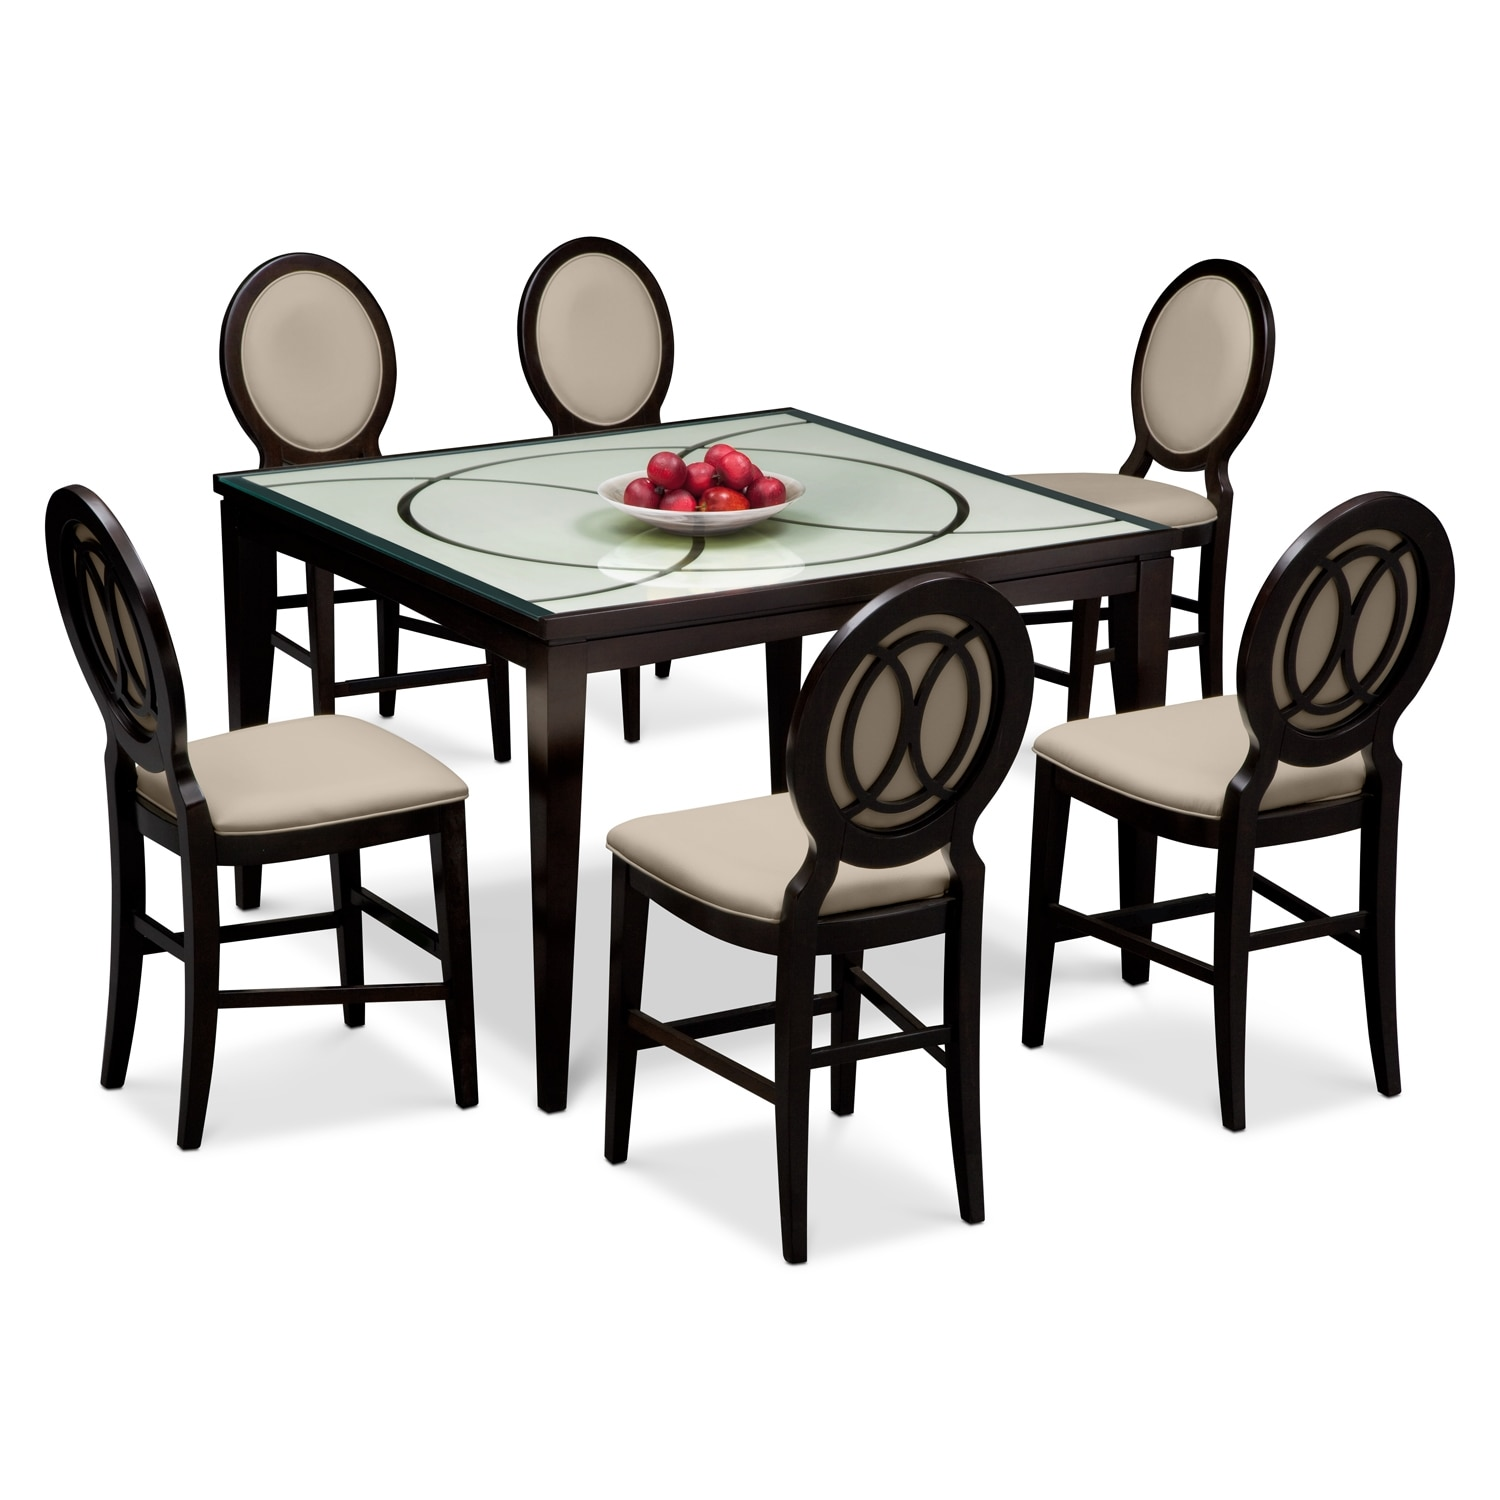 Dining Room Furniture - Cosmo Counter-Height Table and 6 Chairs - Merlot